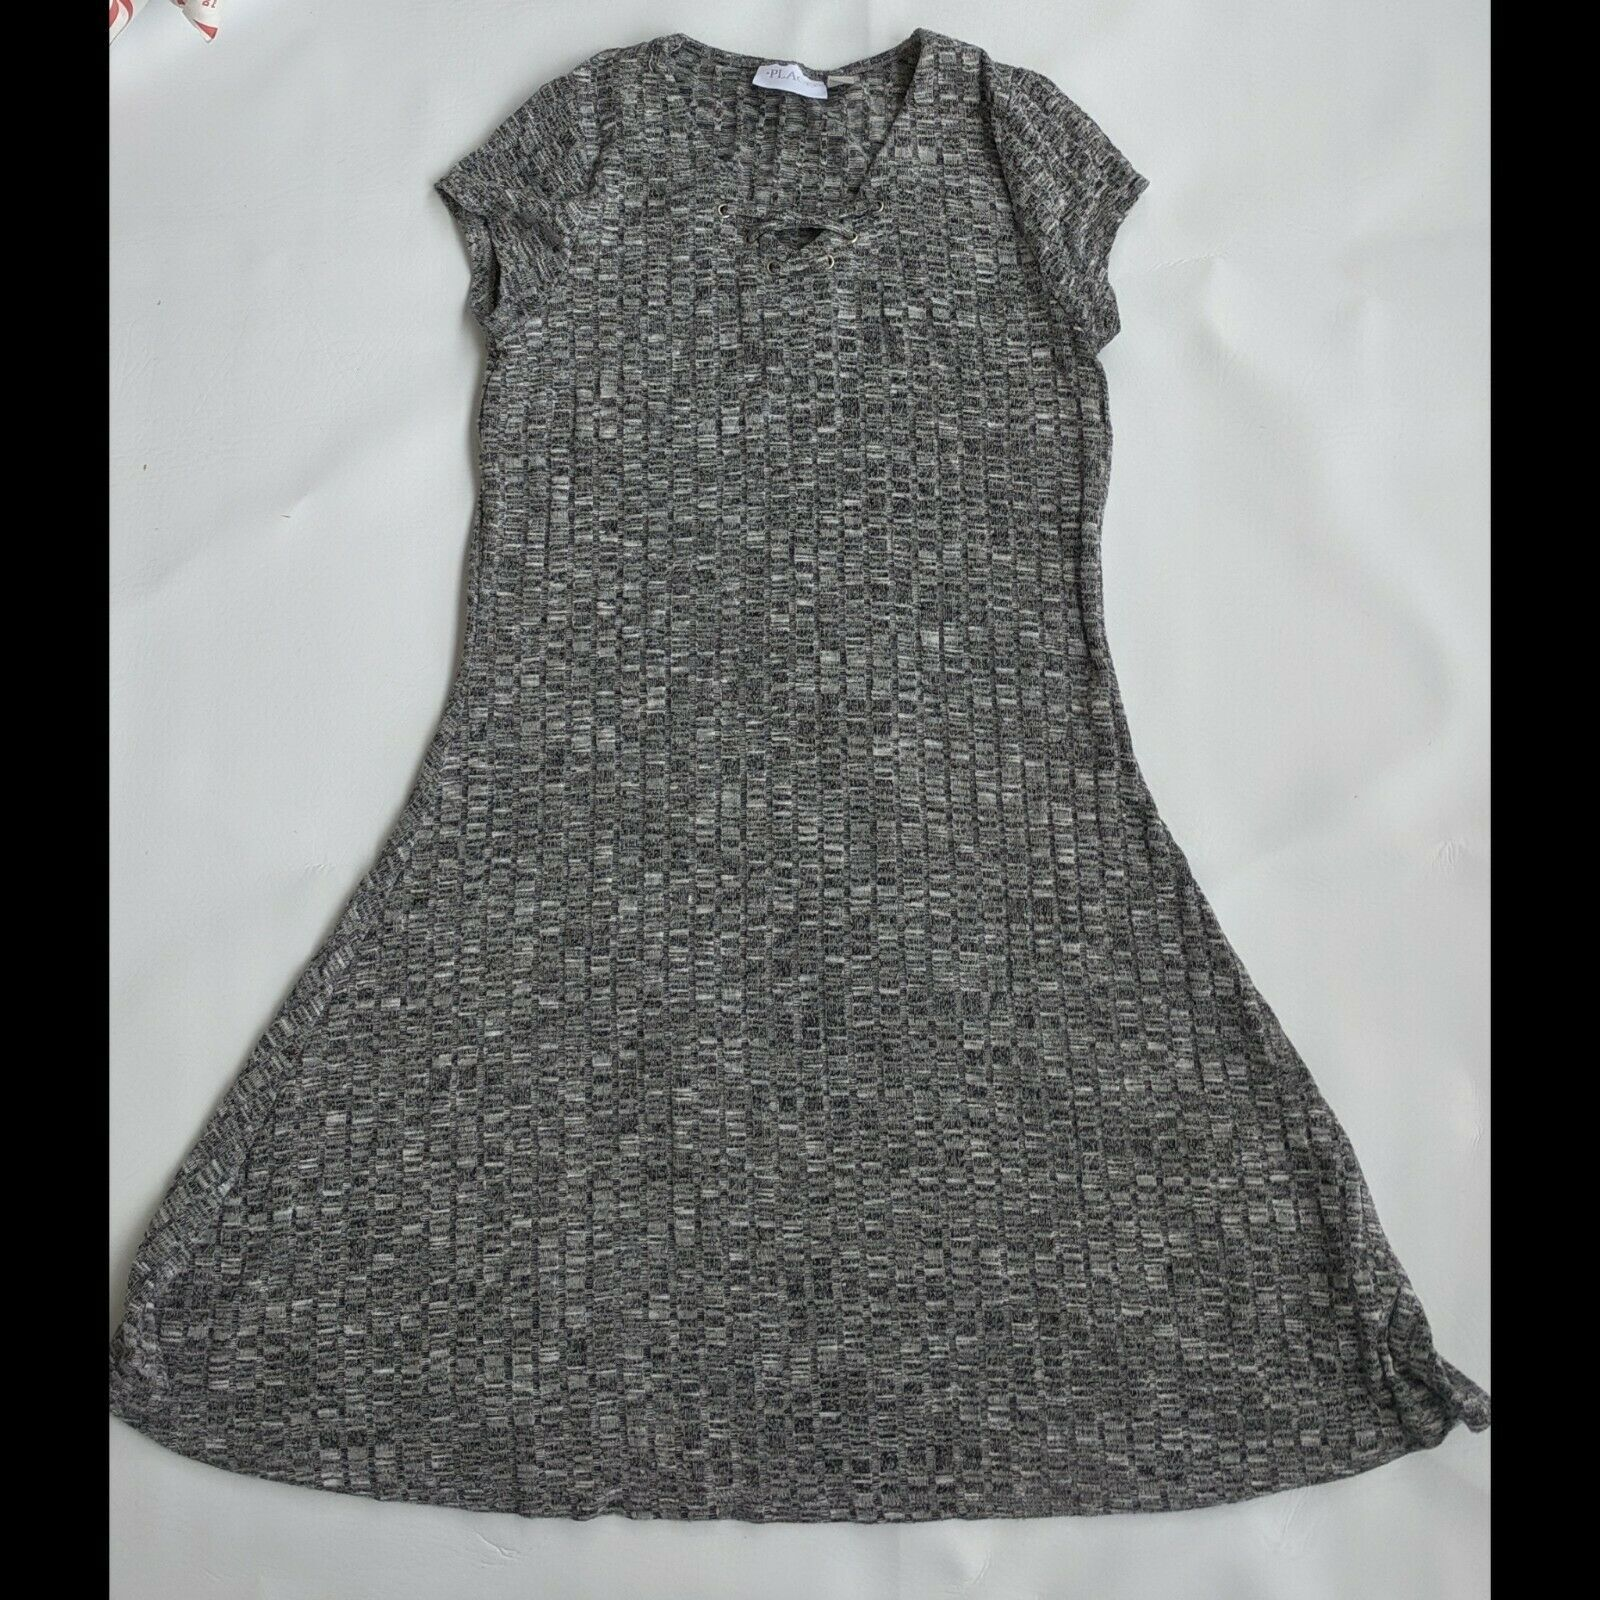 Primary image for Black White Knit Sweater Dress Girls Size 16 XXL Childrens Place Short Sleeve